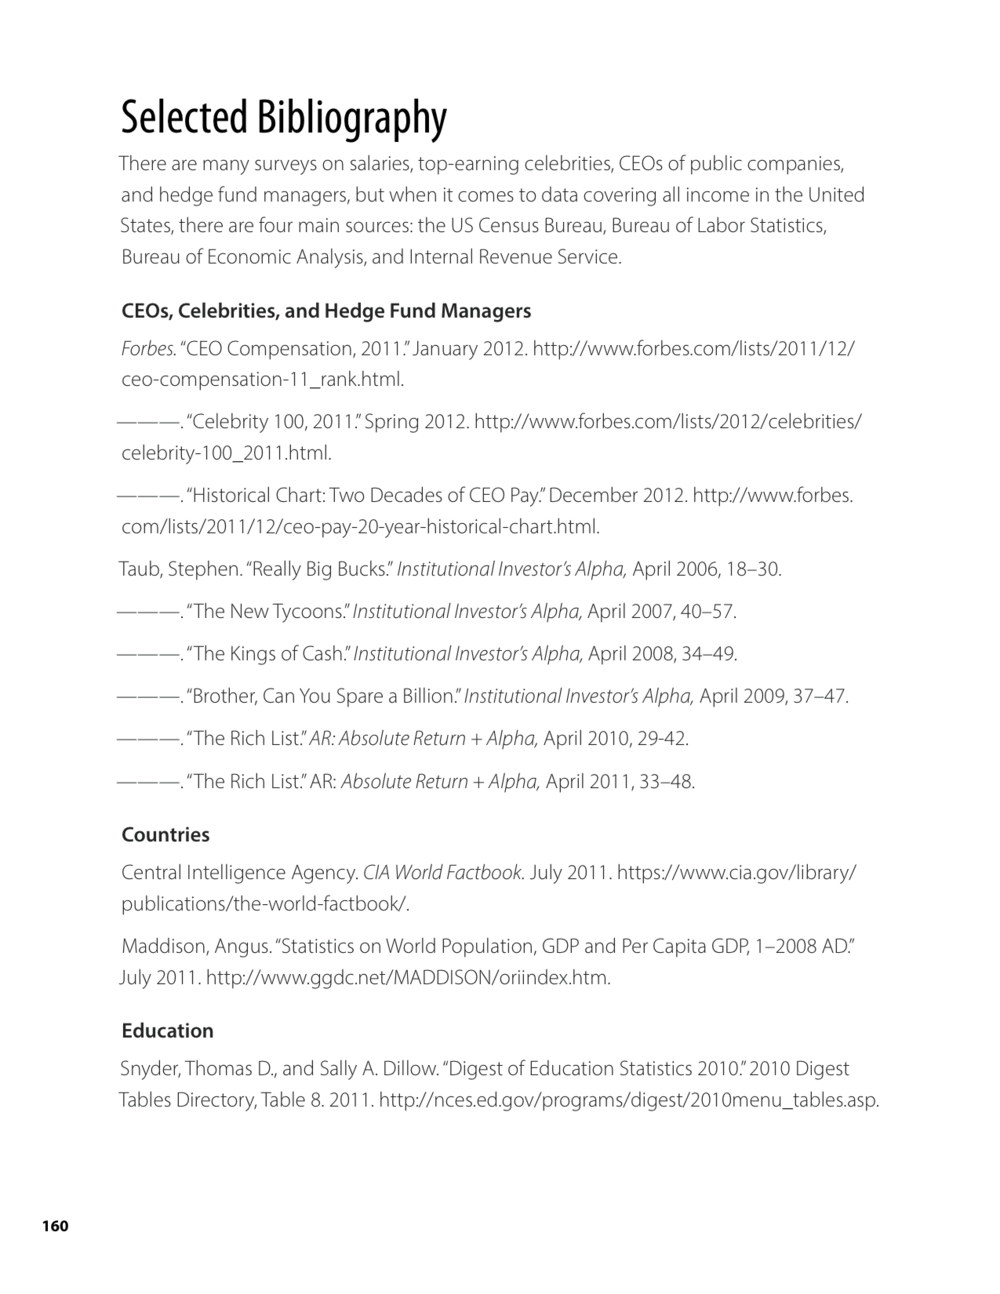 IncomeGuide_2013_Jan17_RGB_page 160_160.png